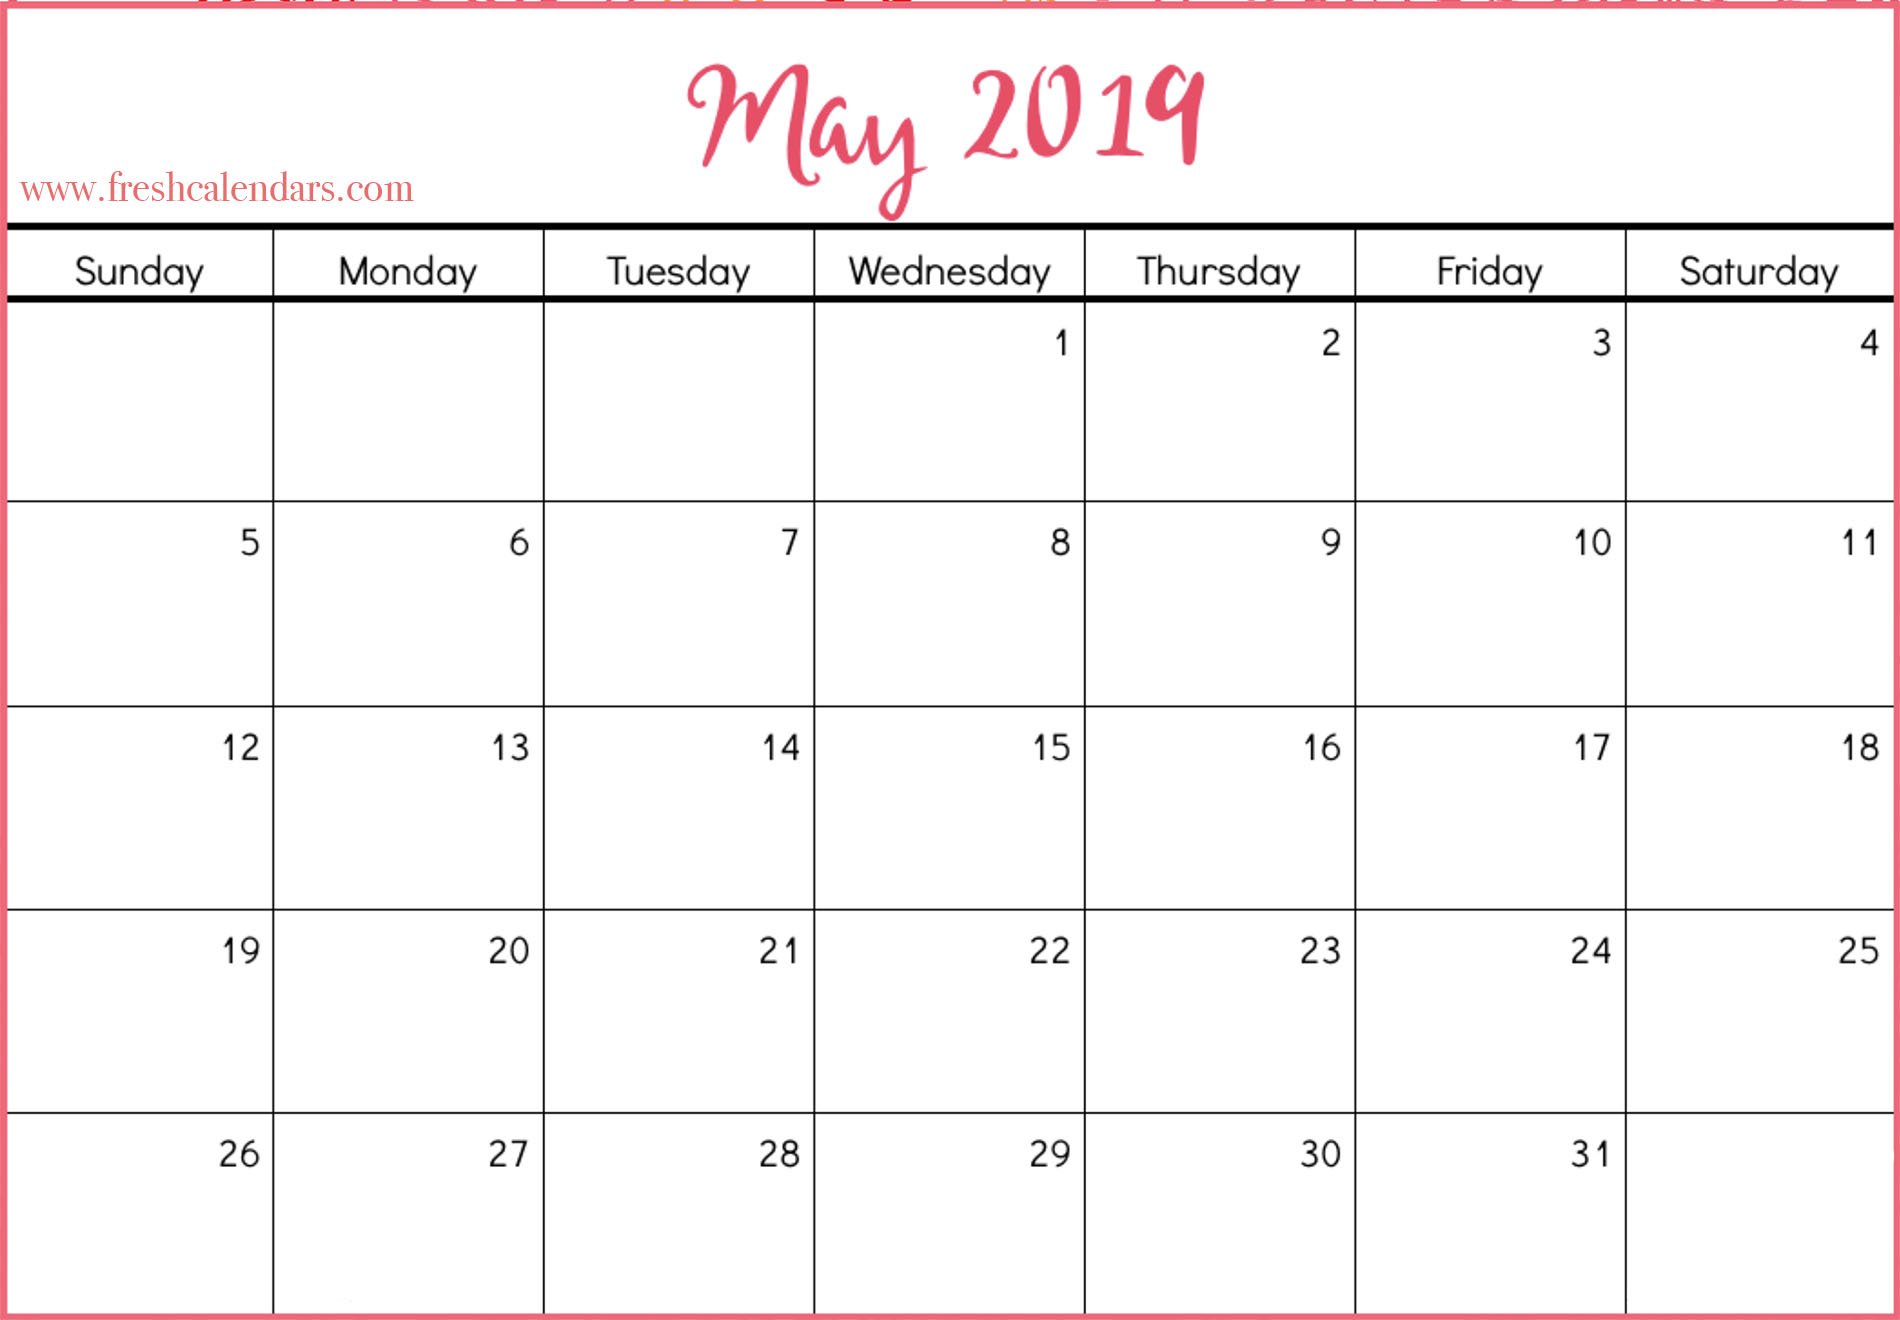 May 2019 Calendar Templates For Free